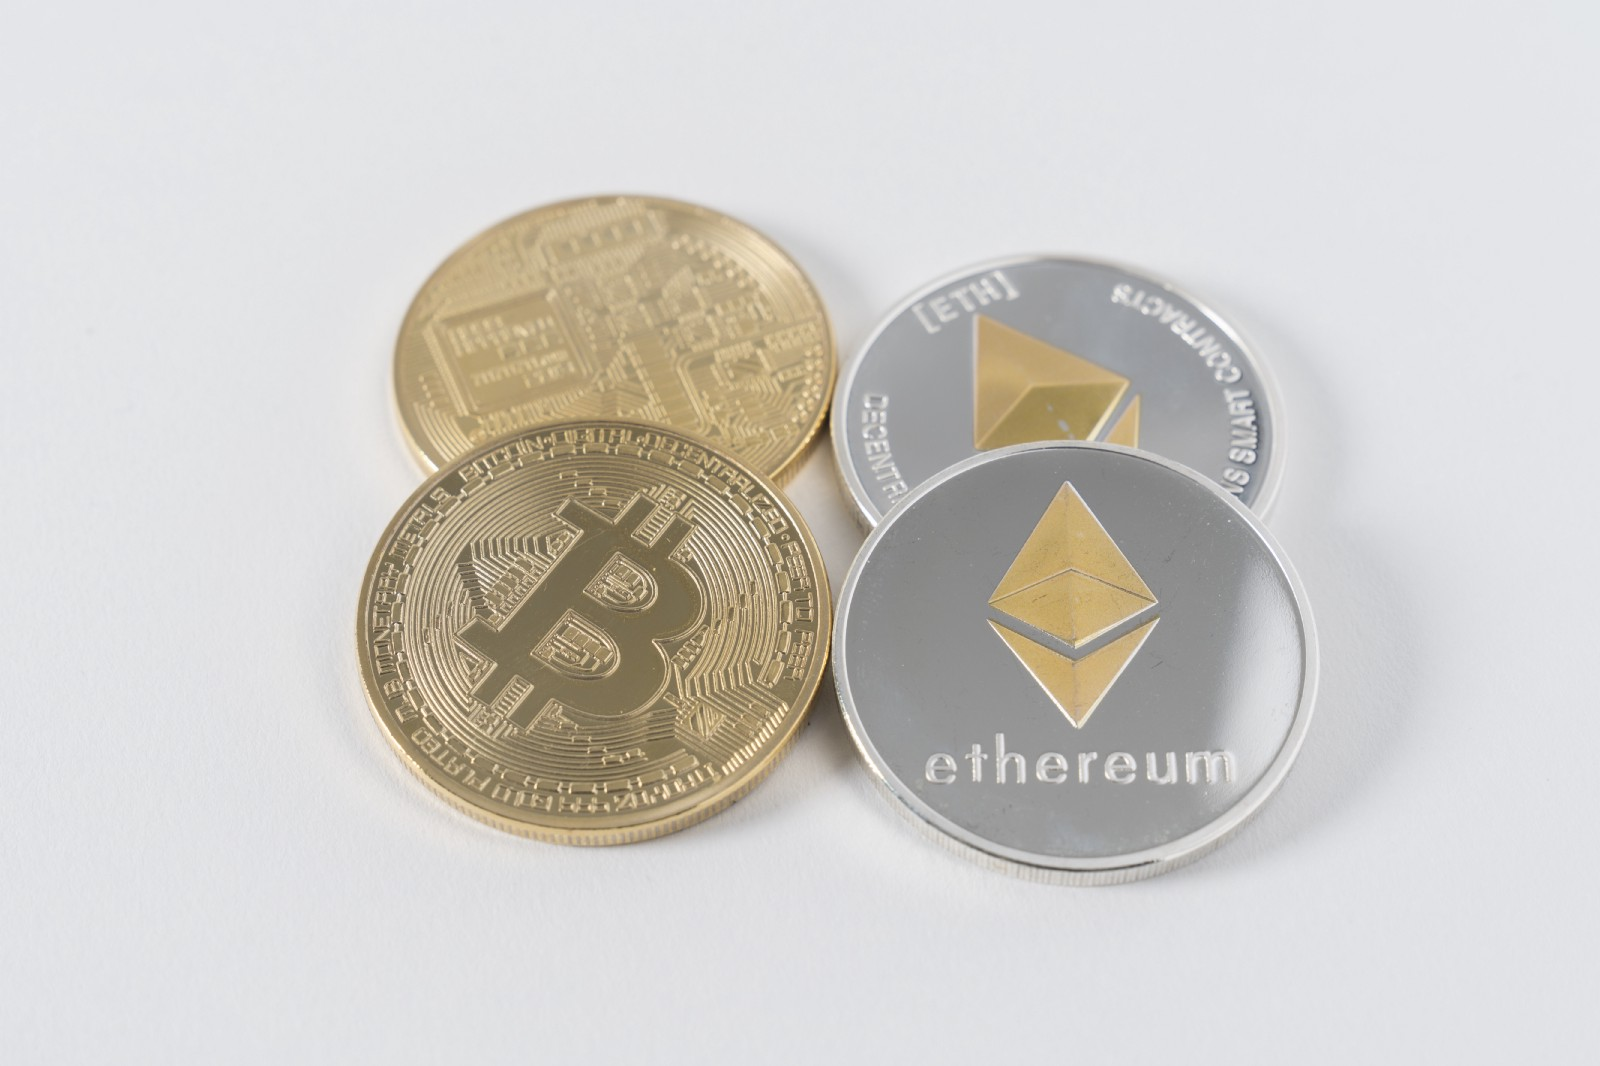 /4-reasons-ethereum-is-here-to-stay-75b88c7d639f feature image